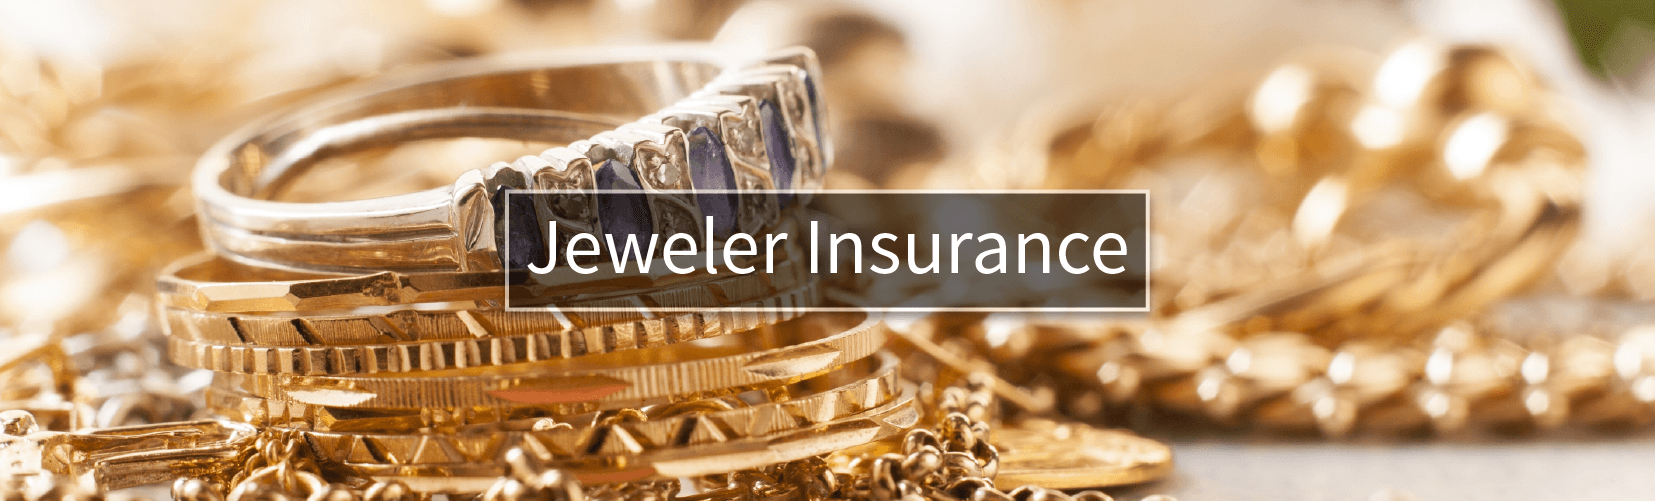 Jeweler Insurance Massachusetts